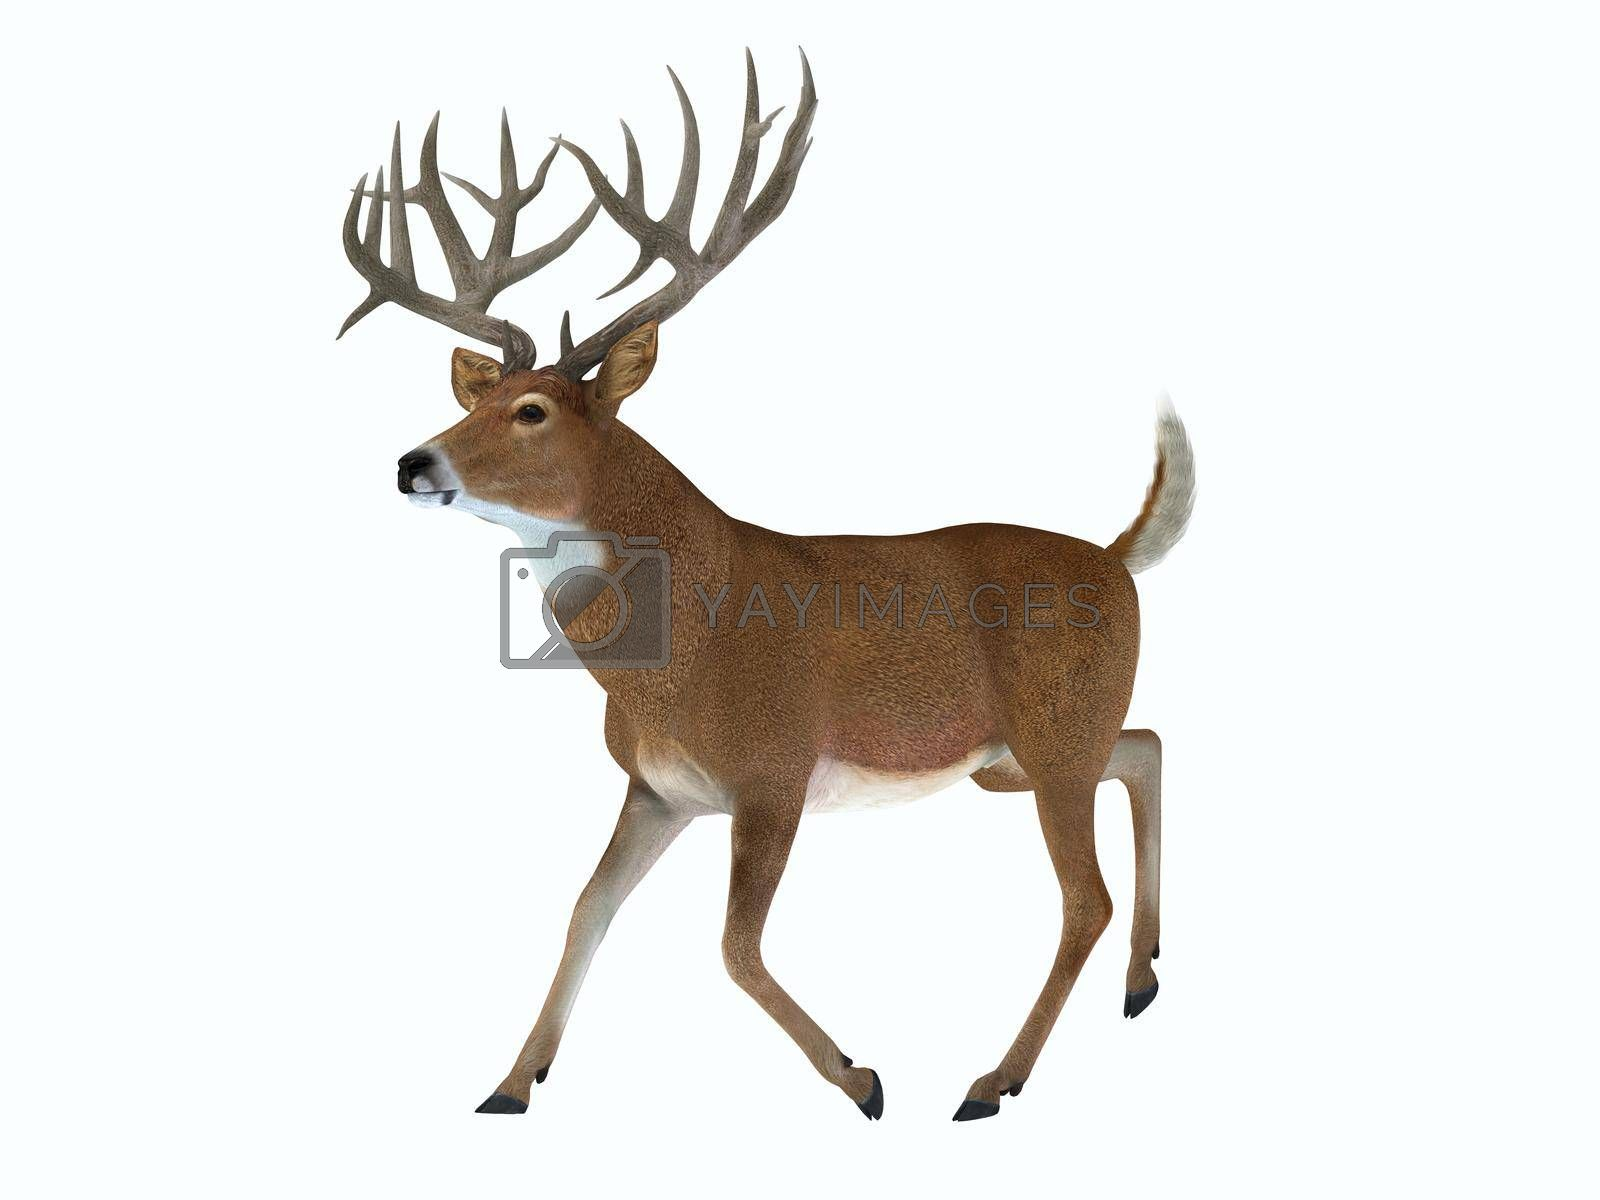 The White tailed deer lives in herds in North and South America and is an abundant wildlife animal.